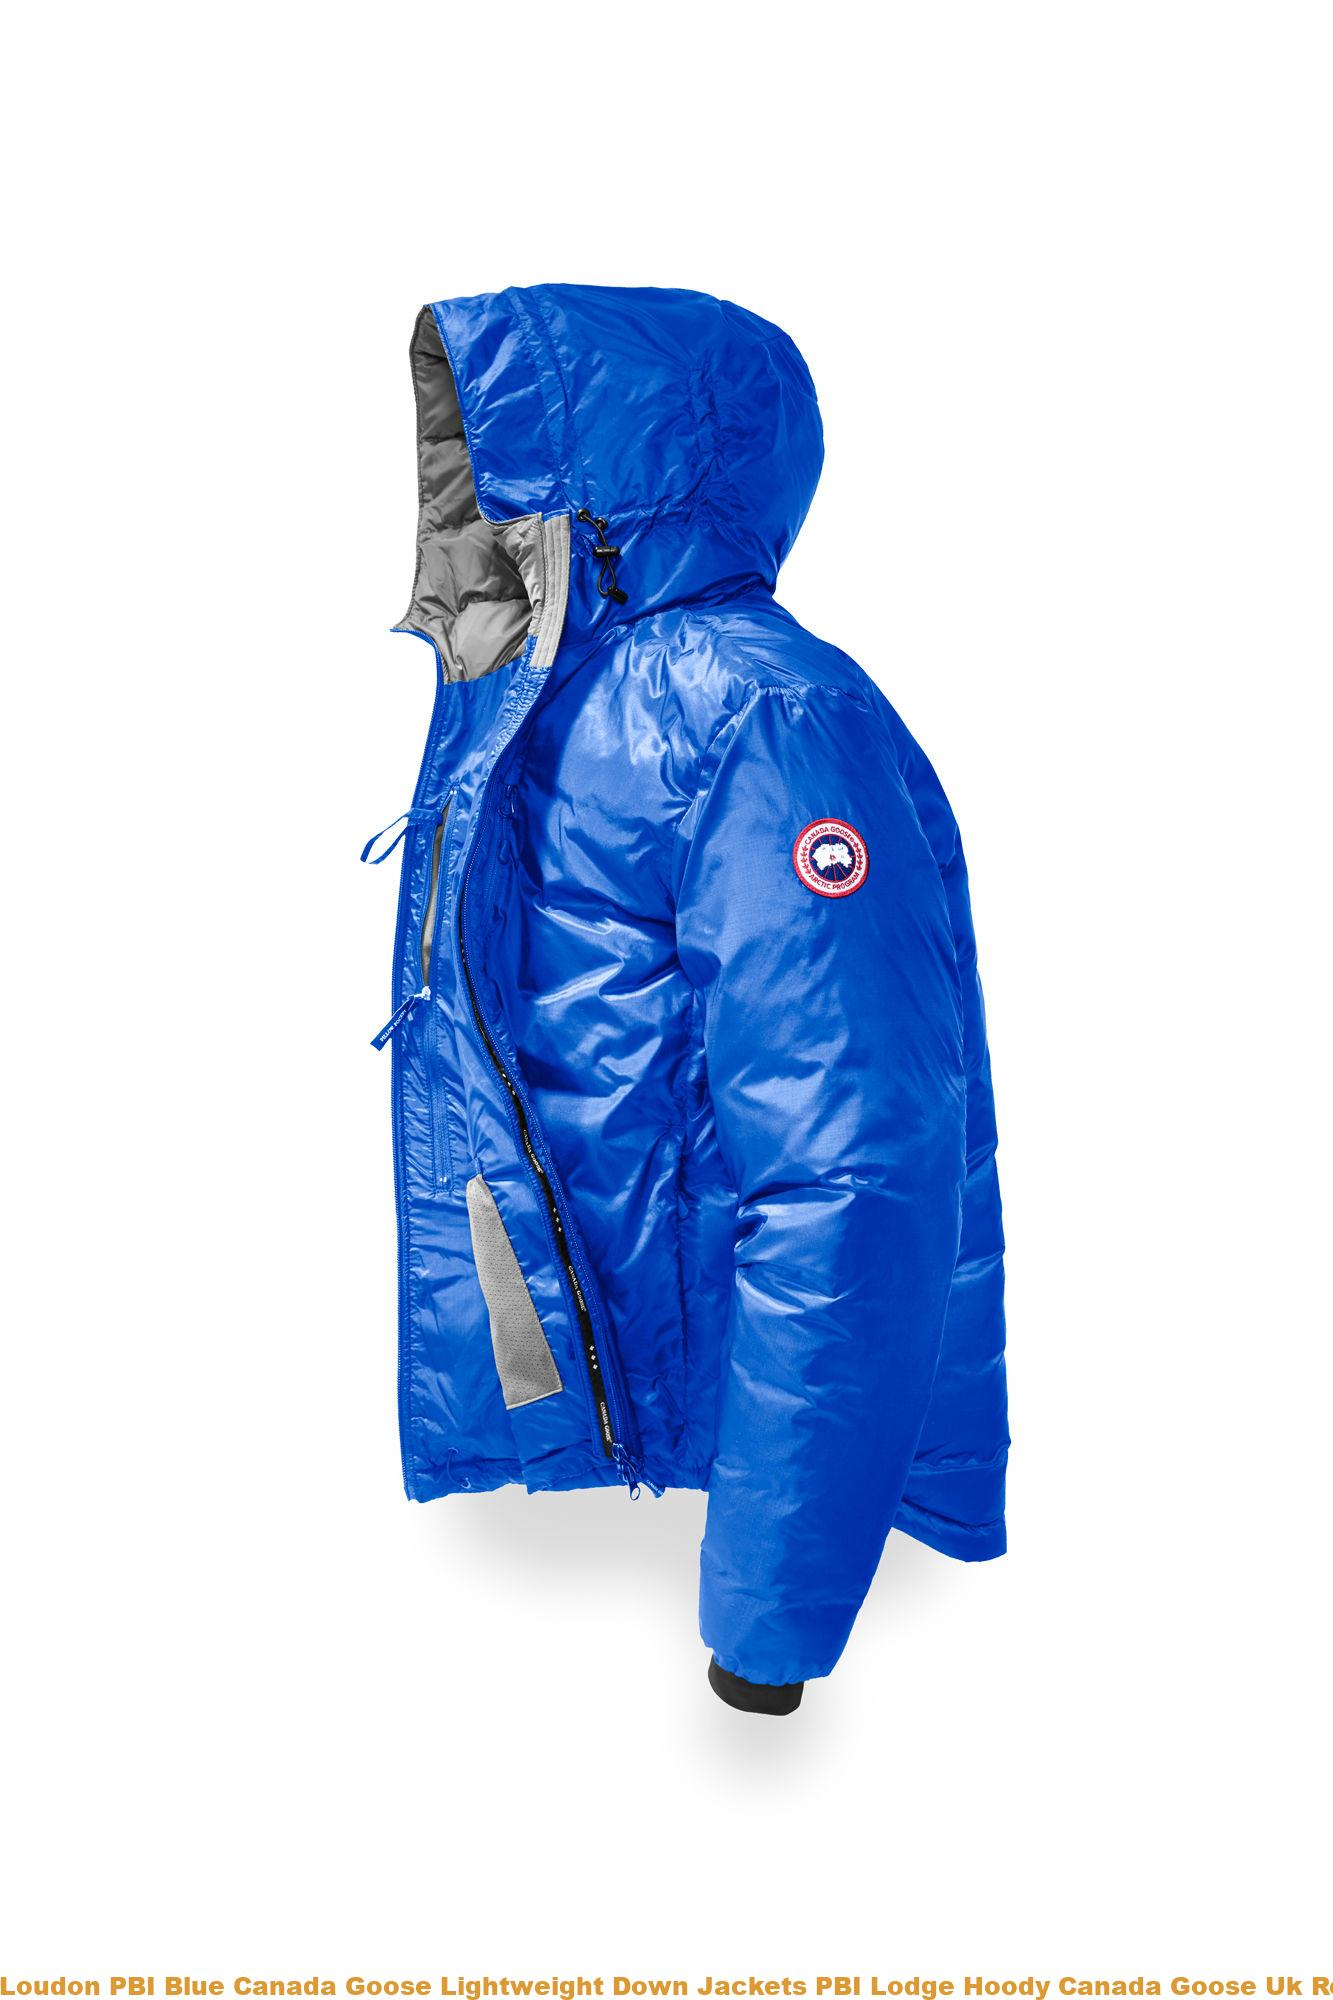 c8c8640d9d1 Loudon PBI Blue Canada Goose Lightweight Down Jackets PBI Lodge Hoody Canada  Goose Uk Reviews 5055MPB